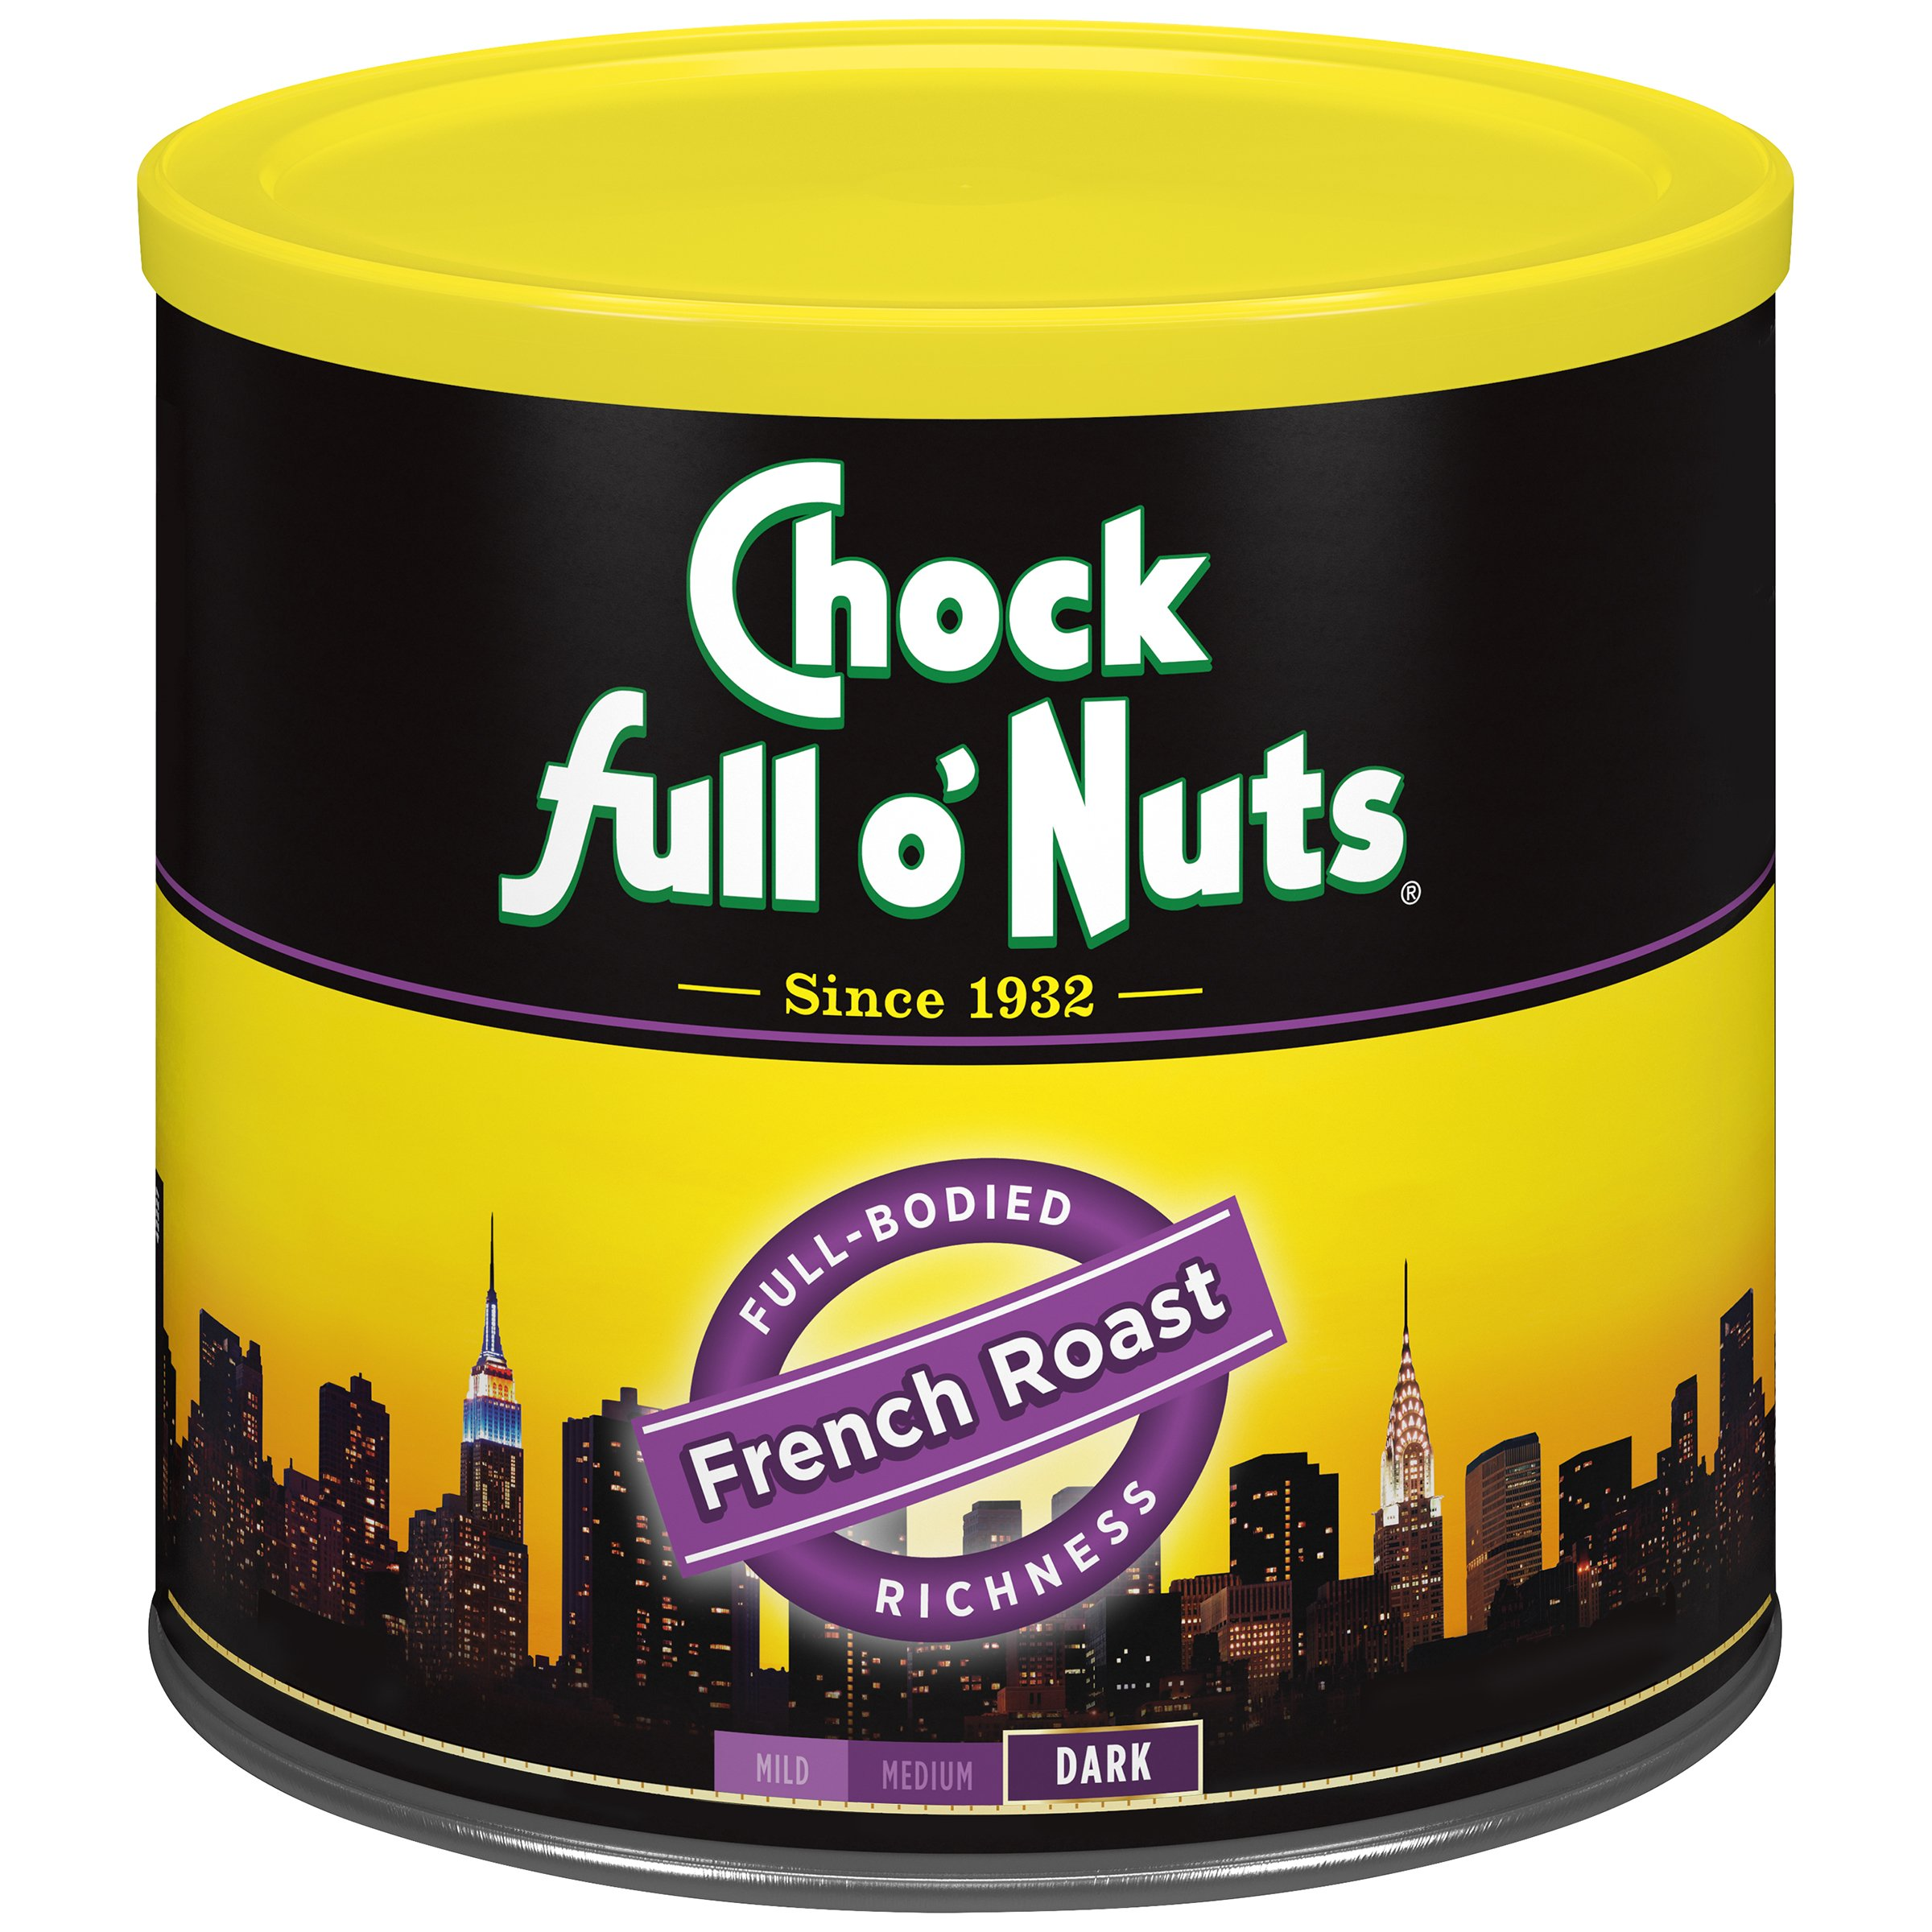 Chock Full o'Nuts Coffee, French Roast Ground, 26 Ounce